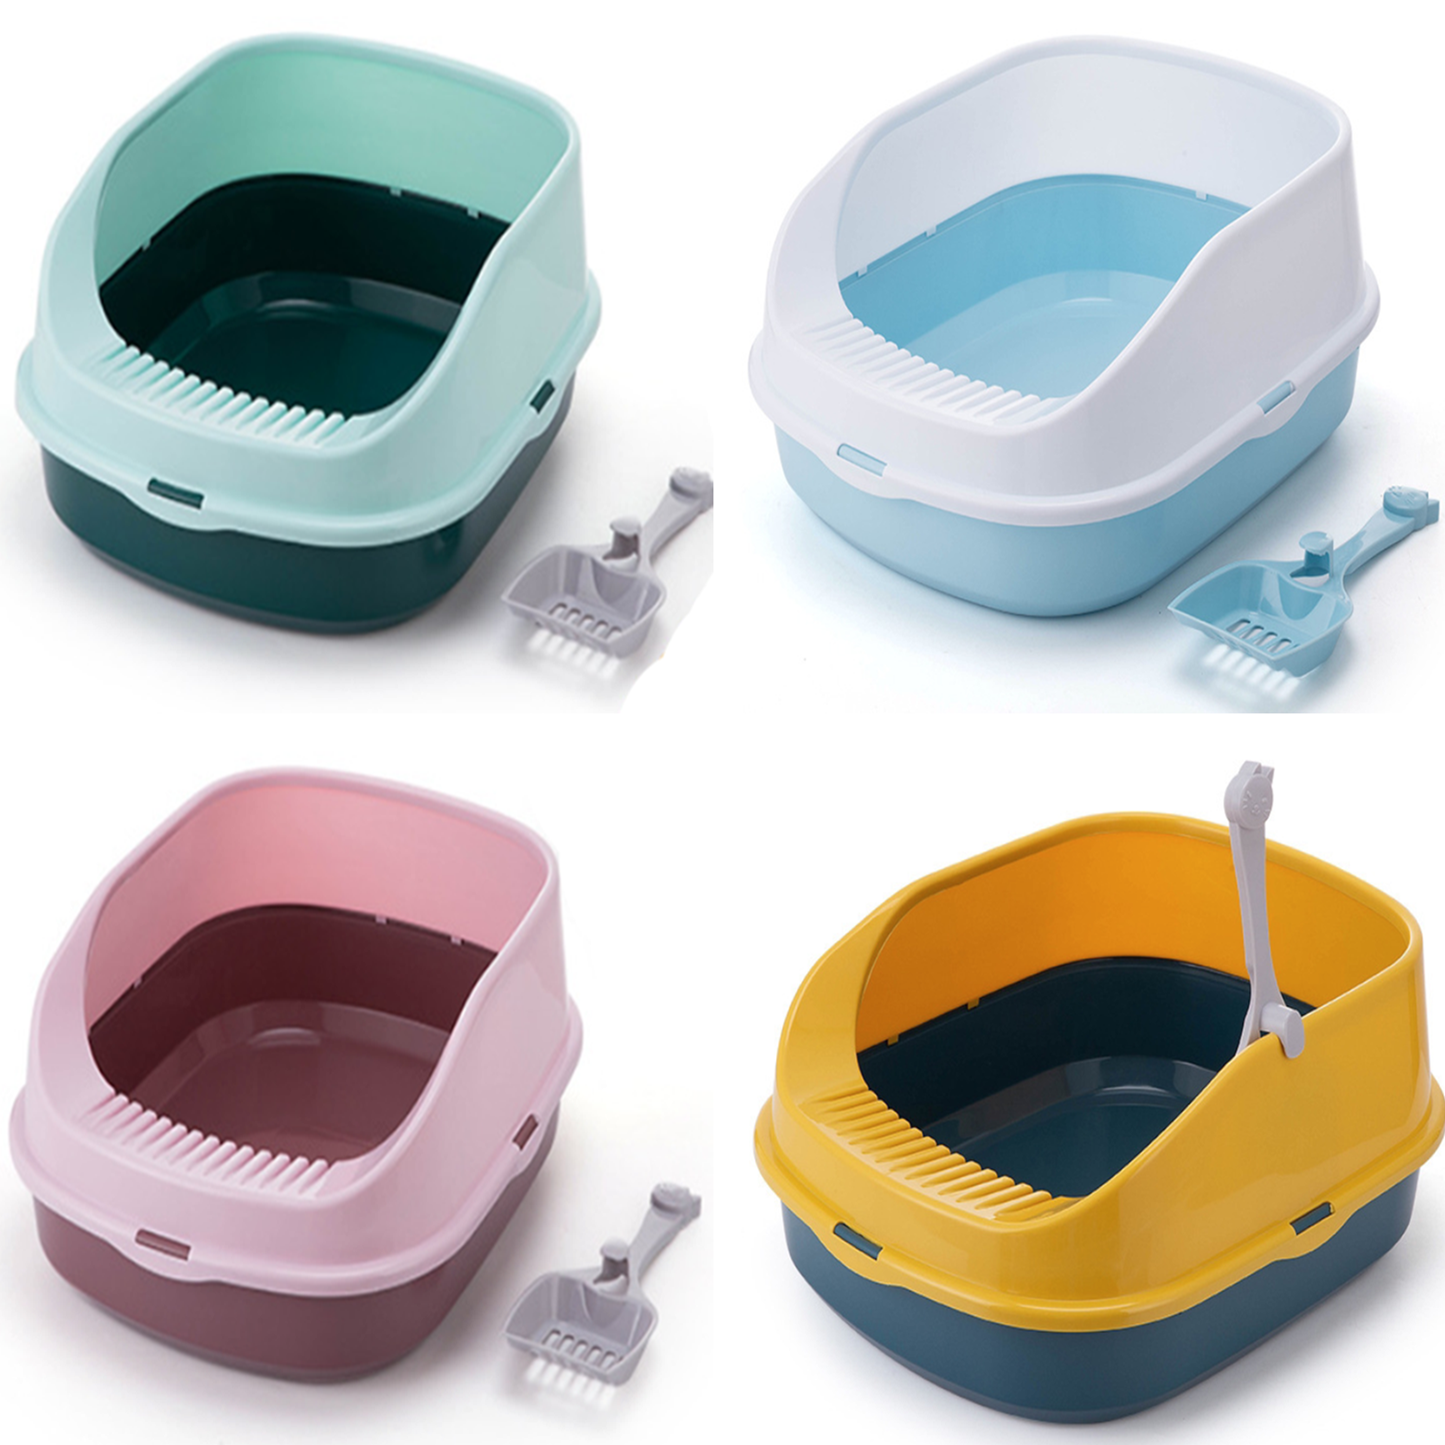 Litter Box Cat Autolimpiable Large Plastics Indoor Toilet Bedpan Anti Splash Products House Furniture Selfs Cleaning Accessories